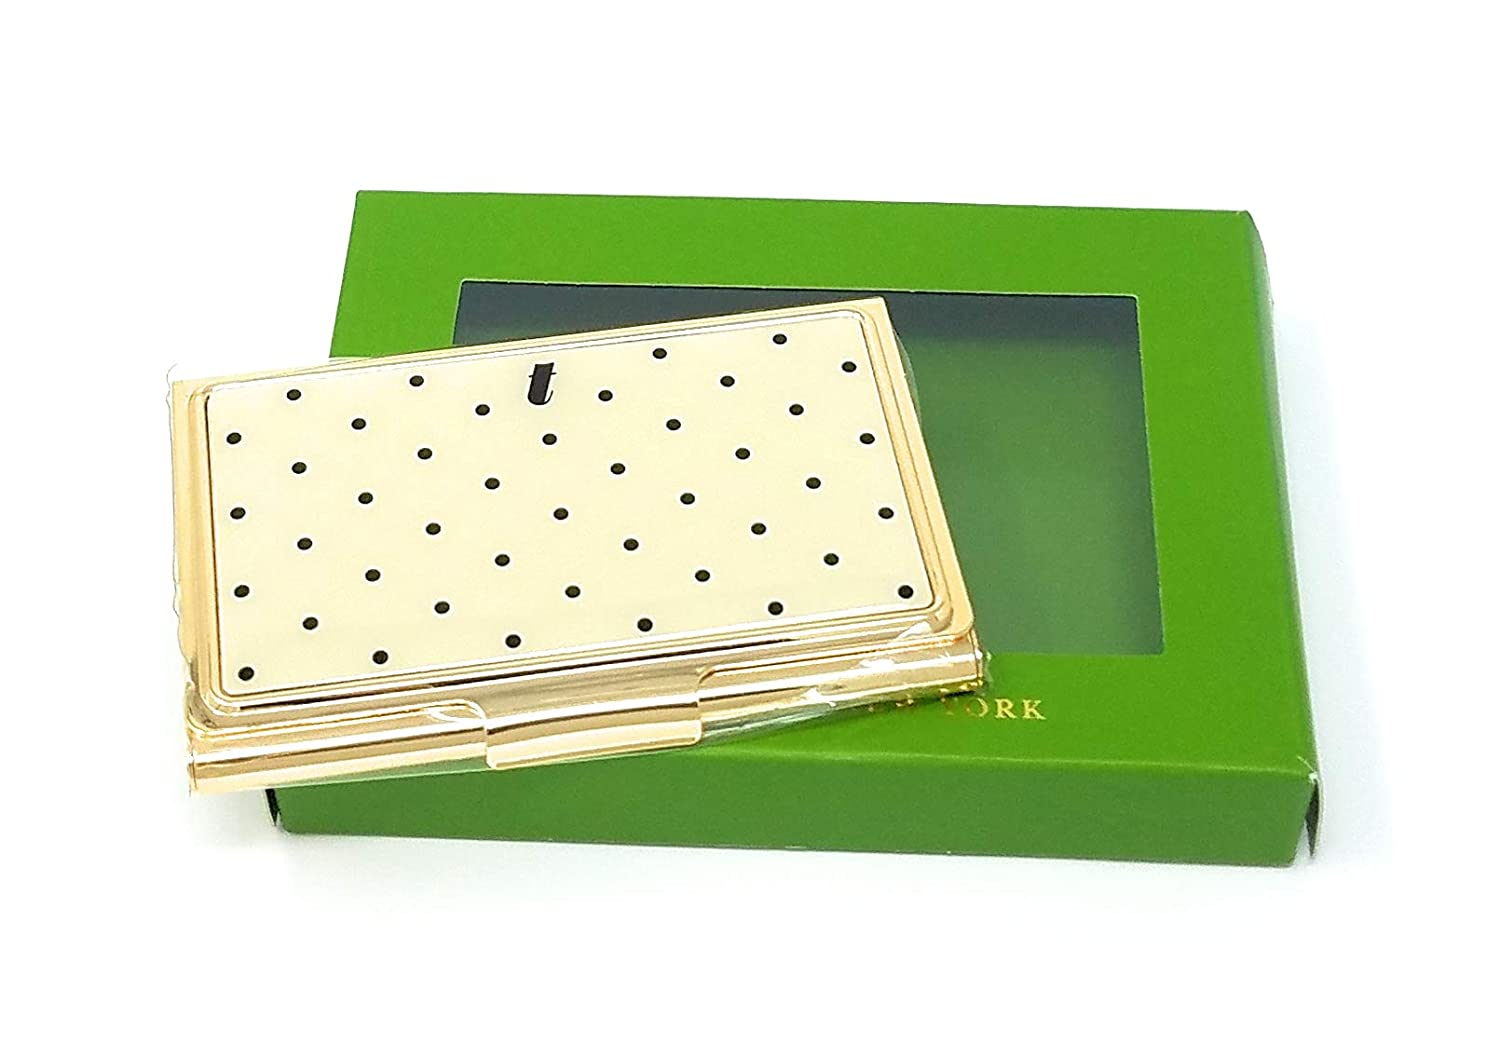 Kate Spade Down To Business Business Card Holder'T', Black Dot